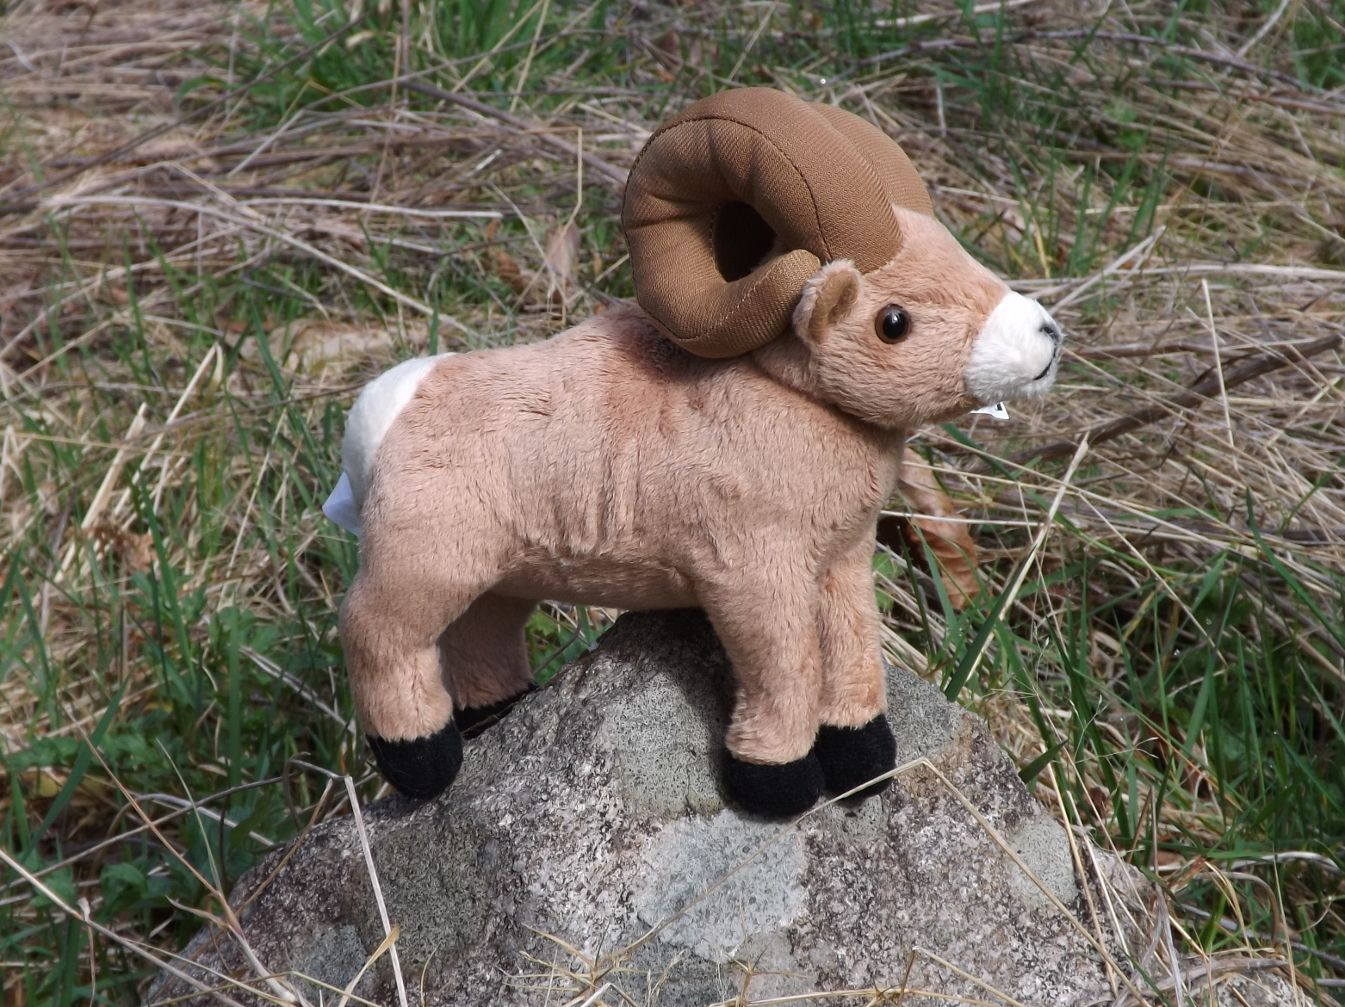 WA1830SBH-Stuffed-Toy-Bighorn-Sheep